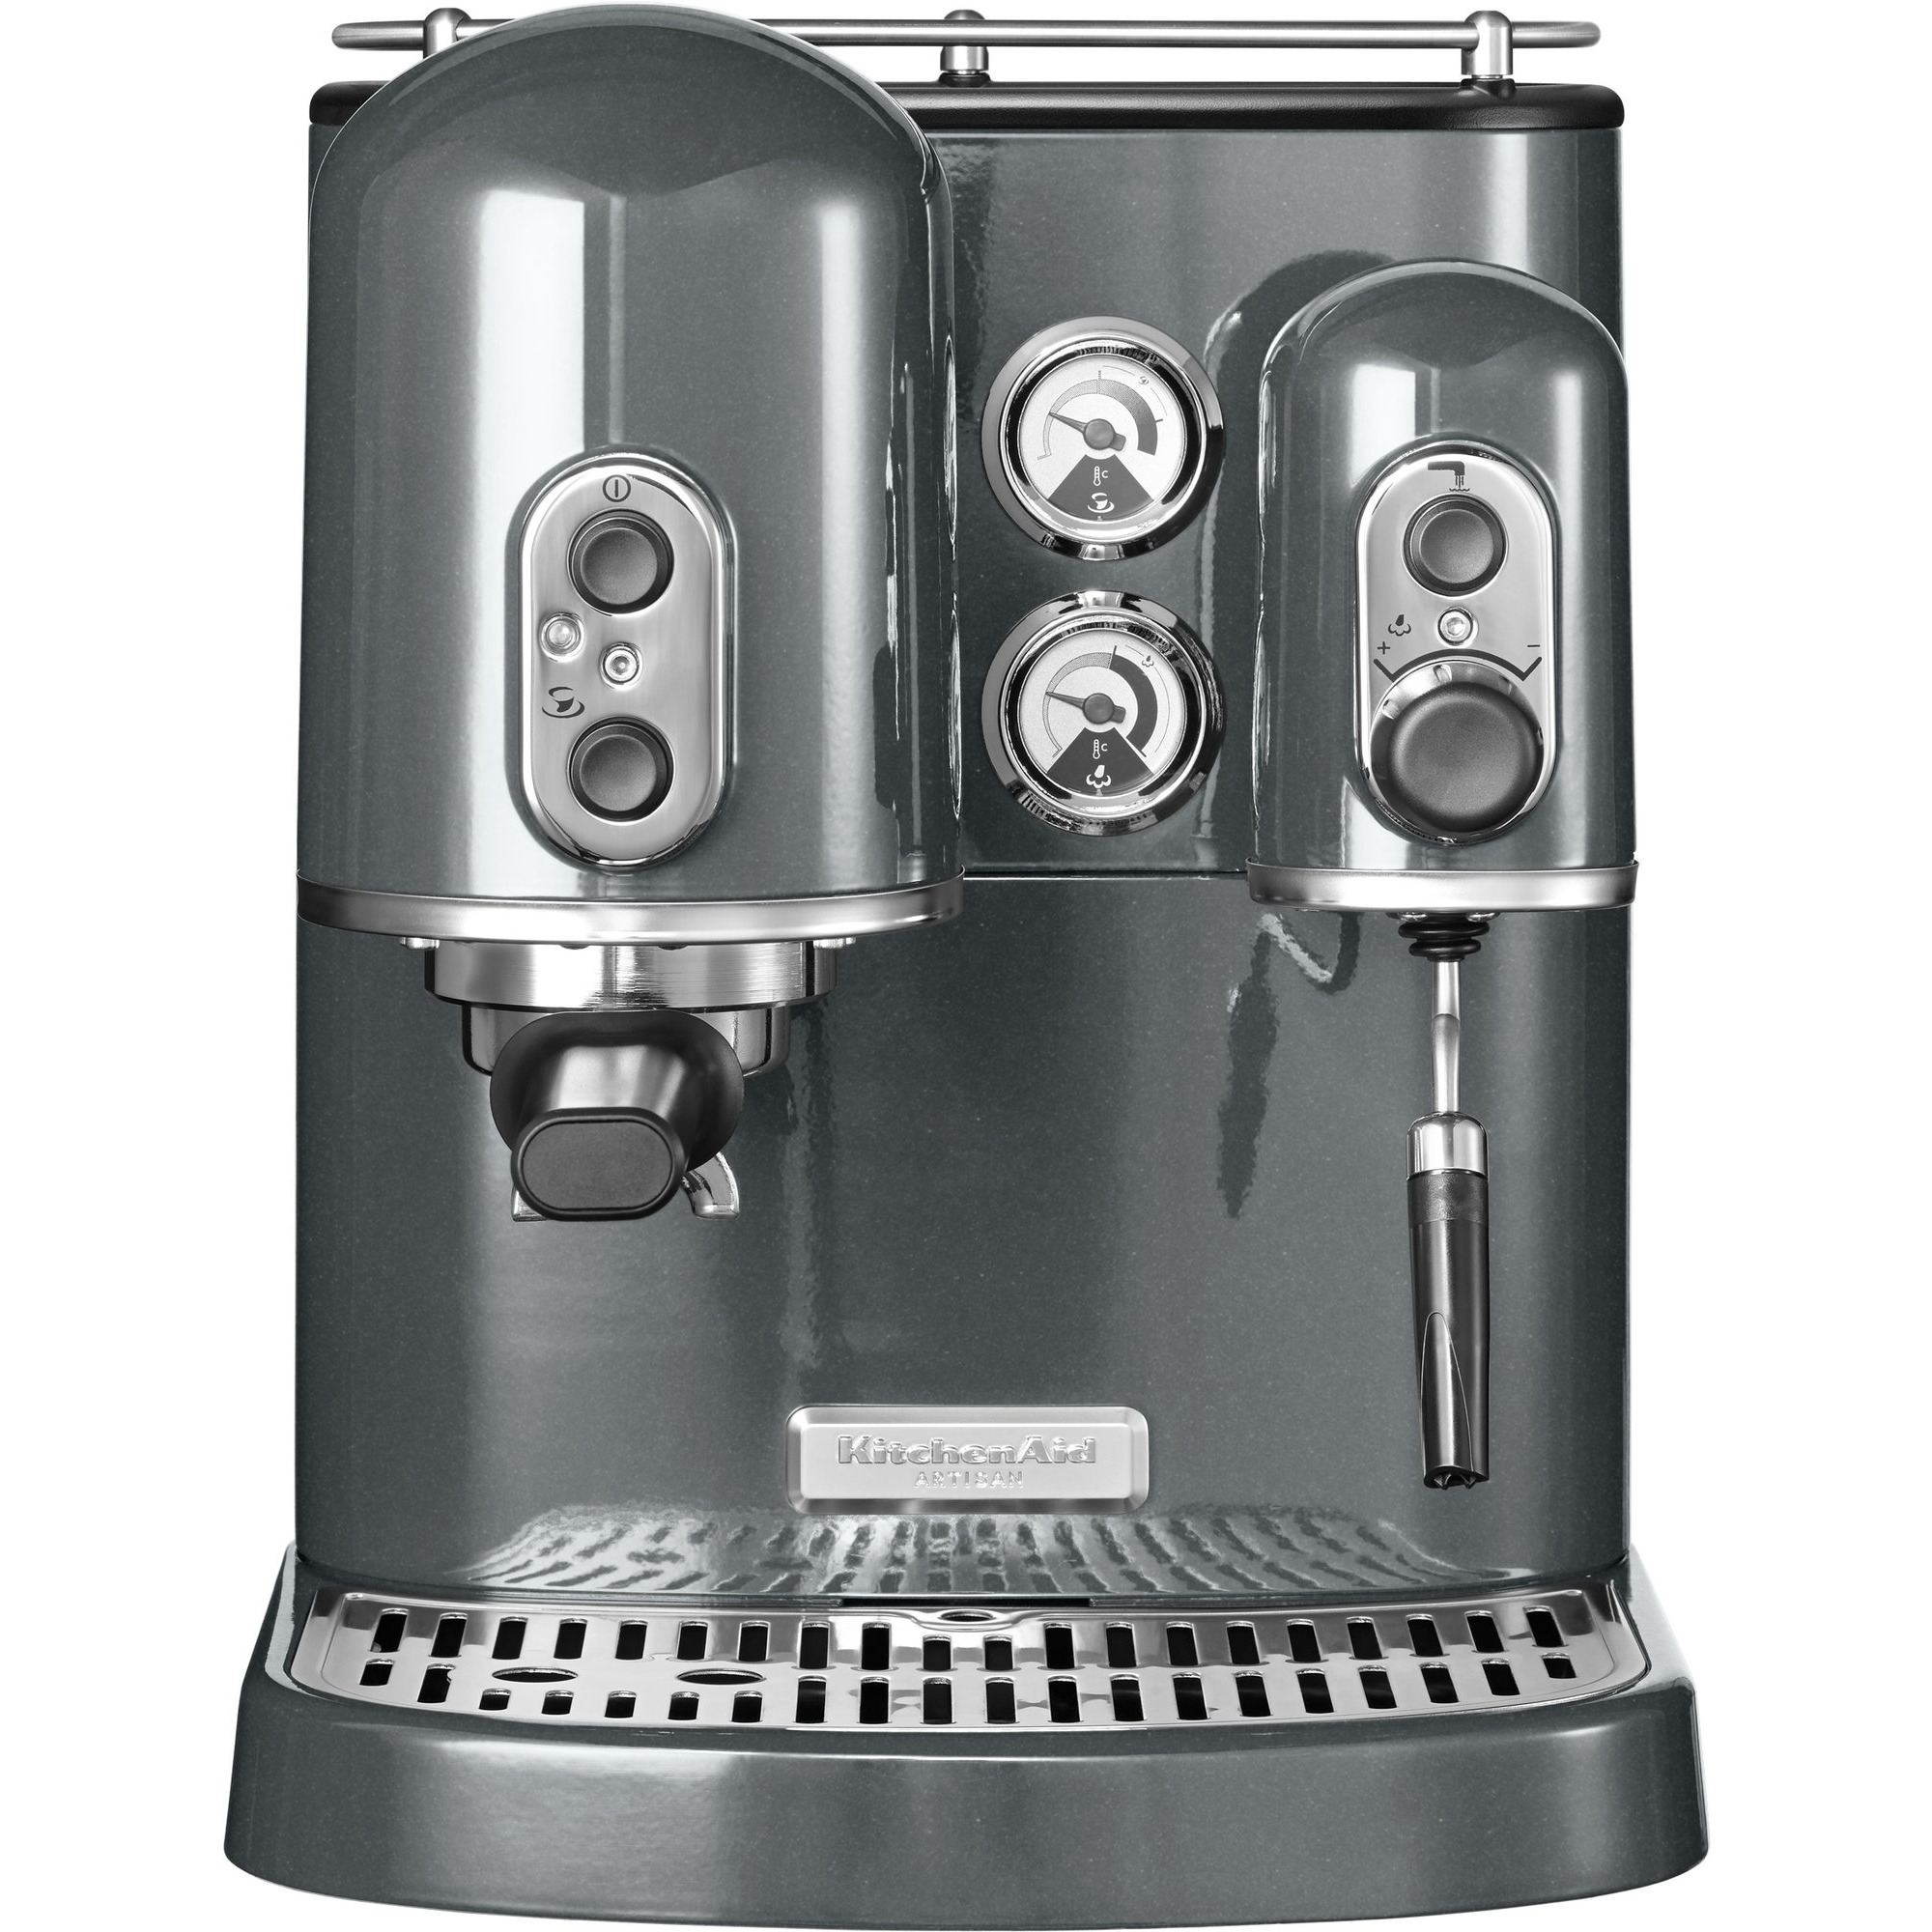 KitchenAid Artisan Espressomaskin Grafit Metallic